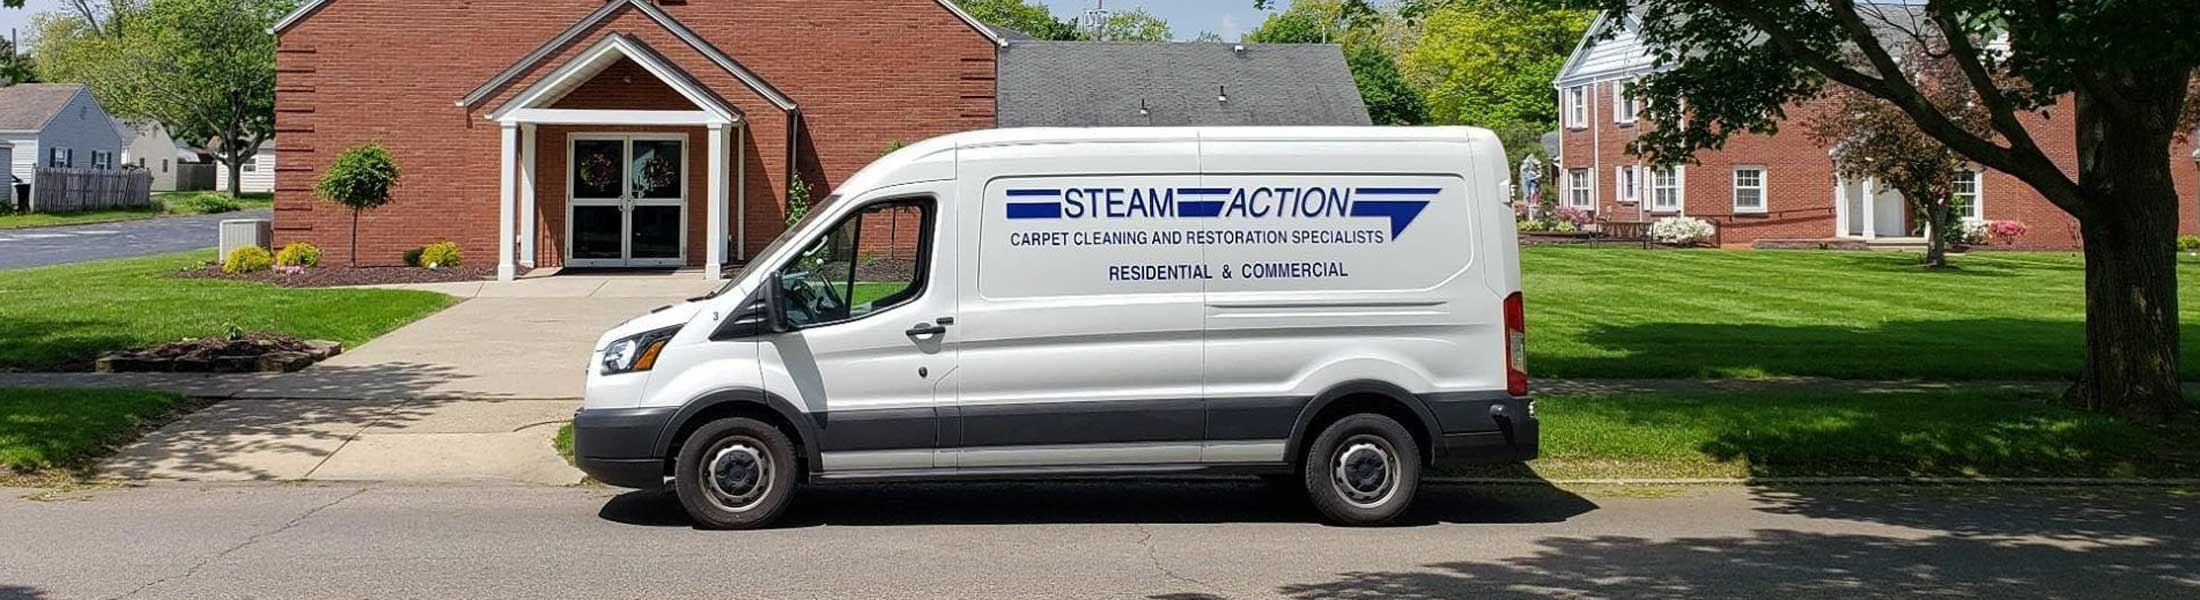 Locally Owned Steam Action Carpet Cleaning